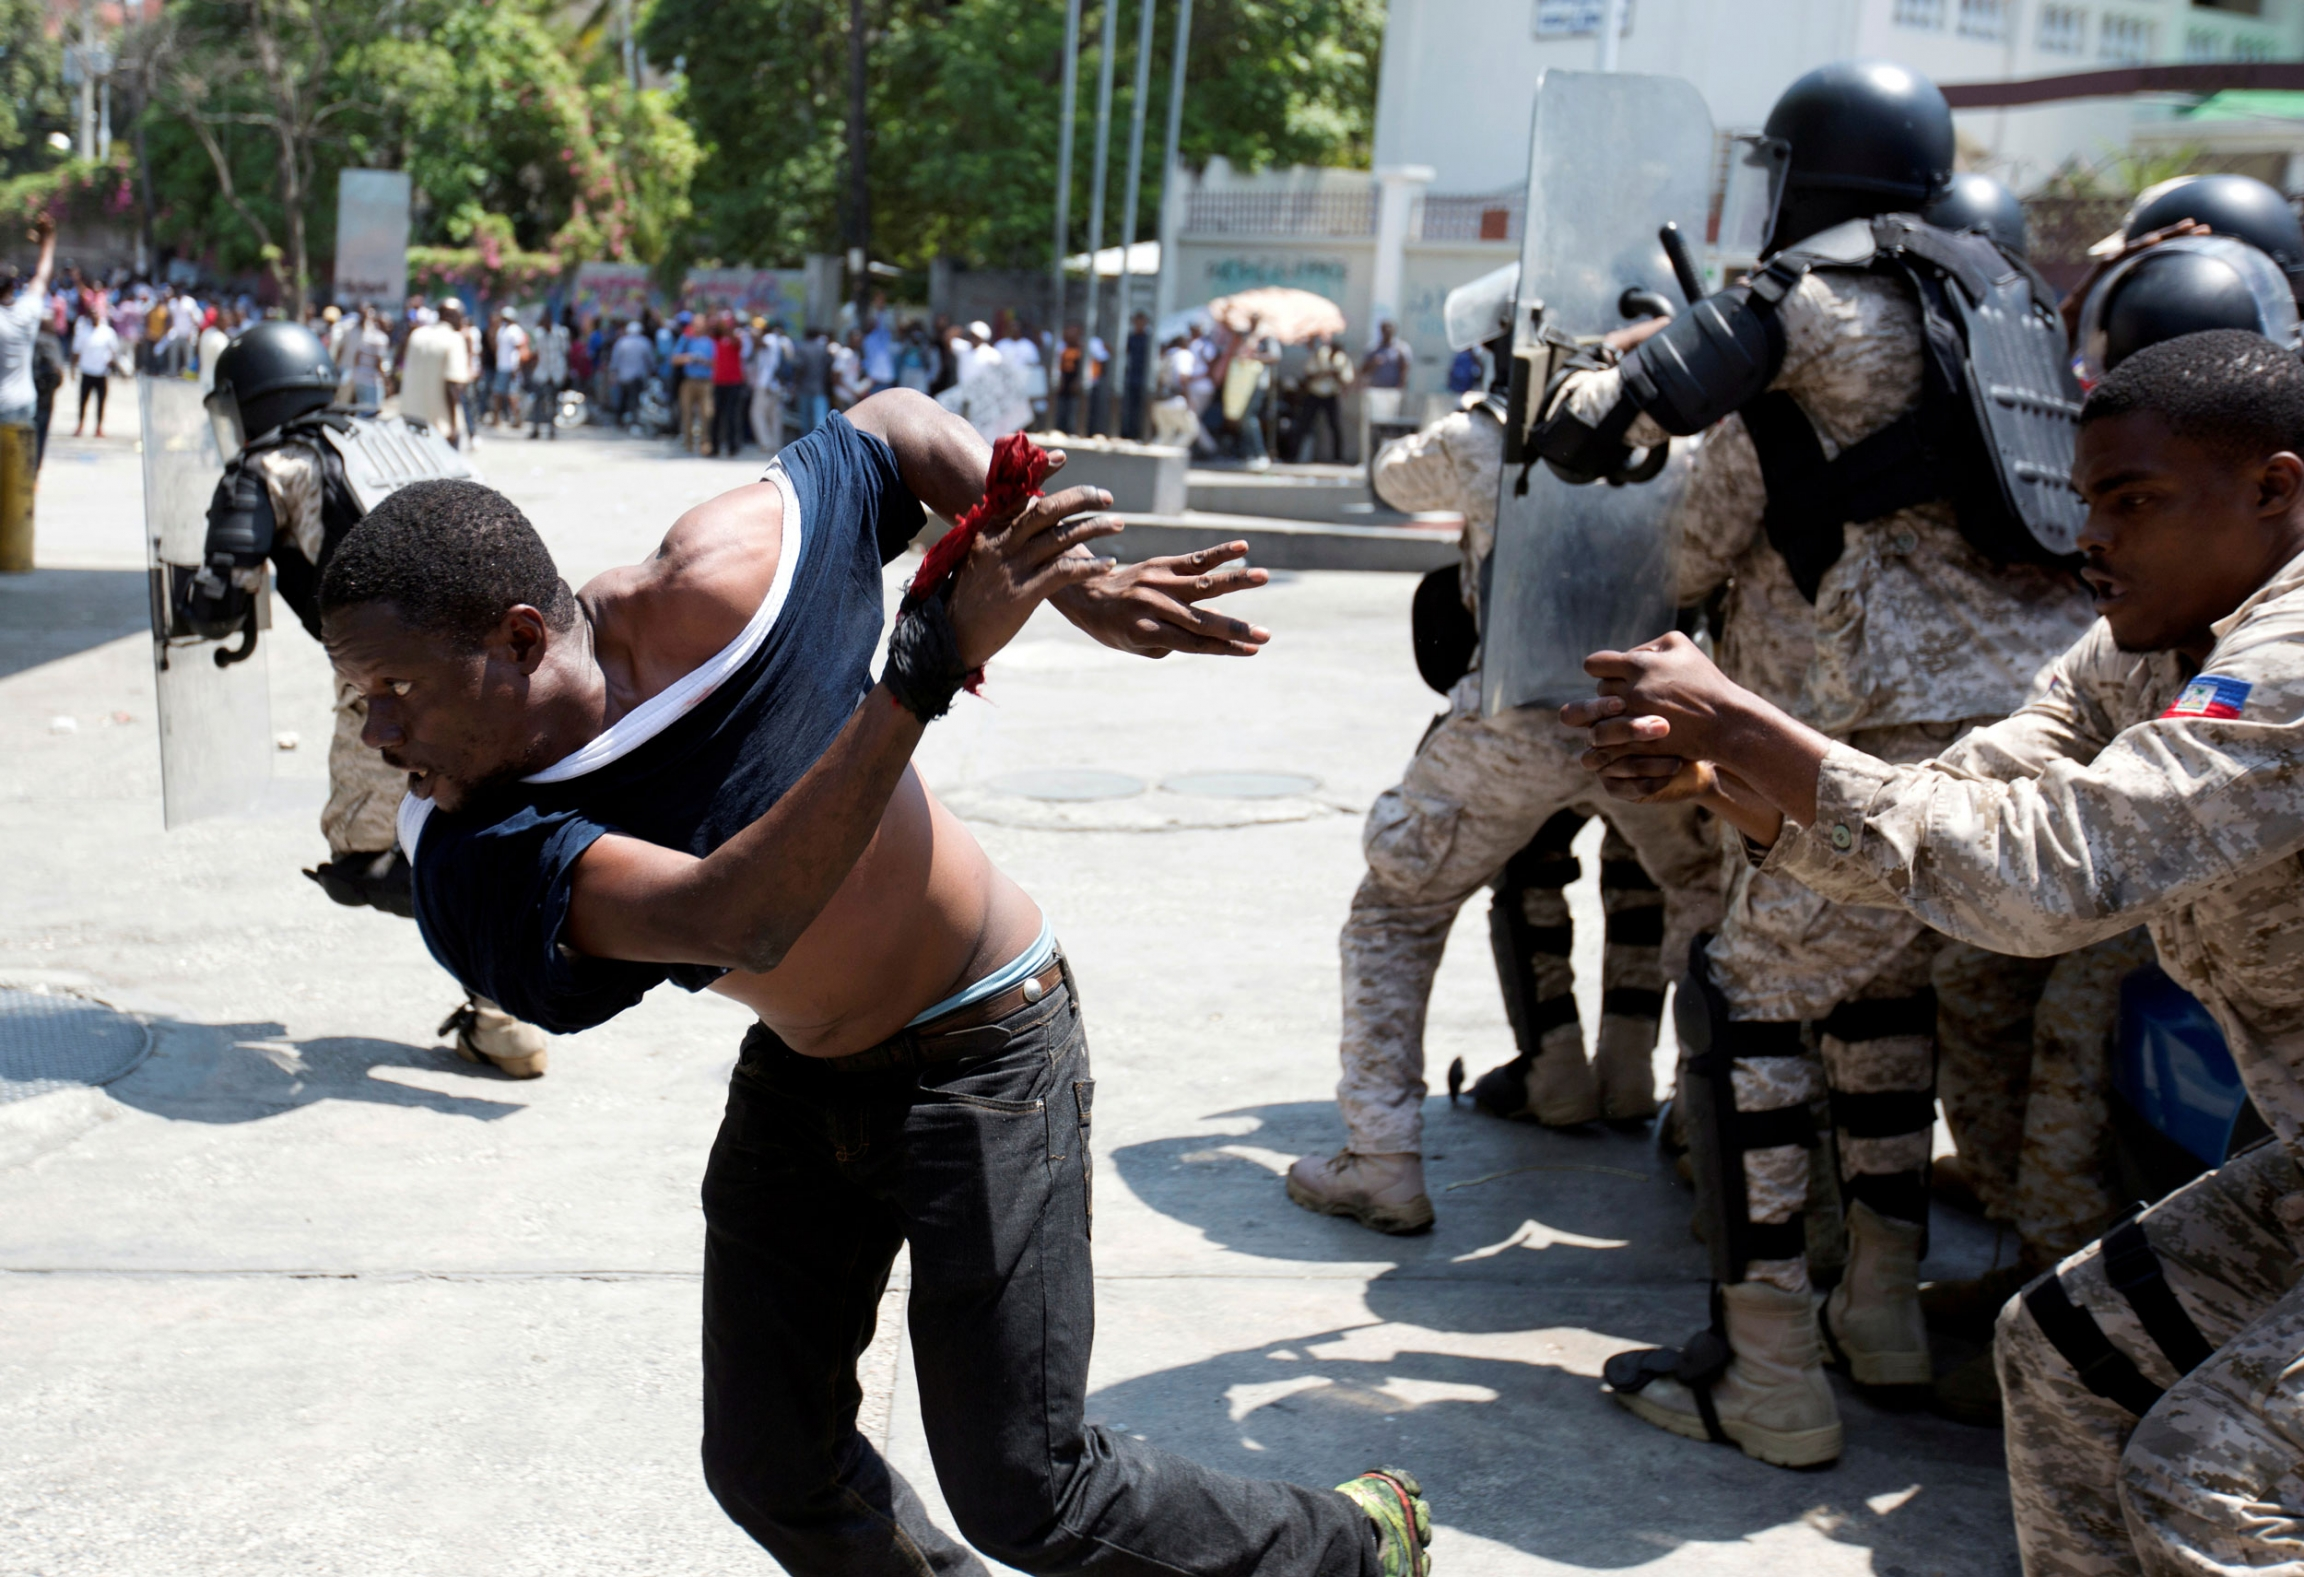 A demonstrator is shown running from Haitian security authorities with his blue shirt almost torn off.